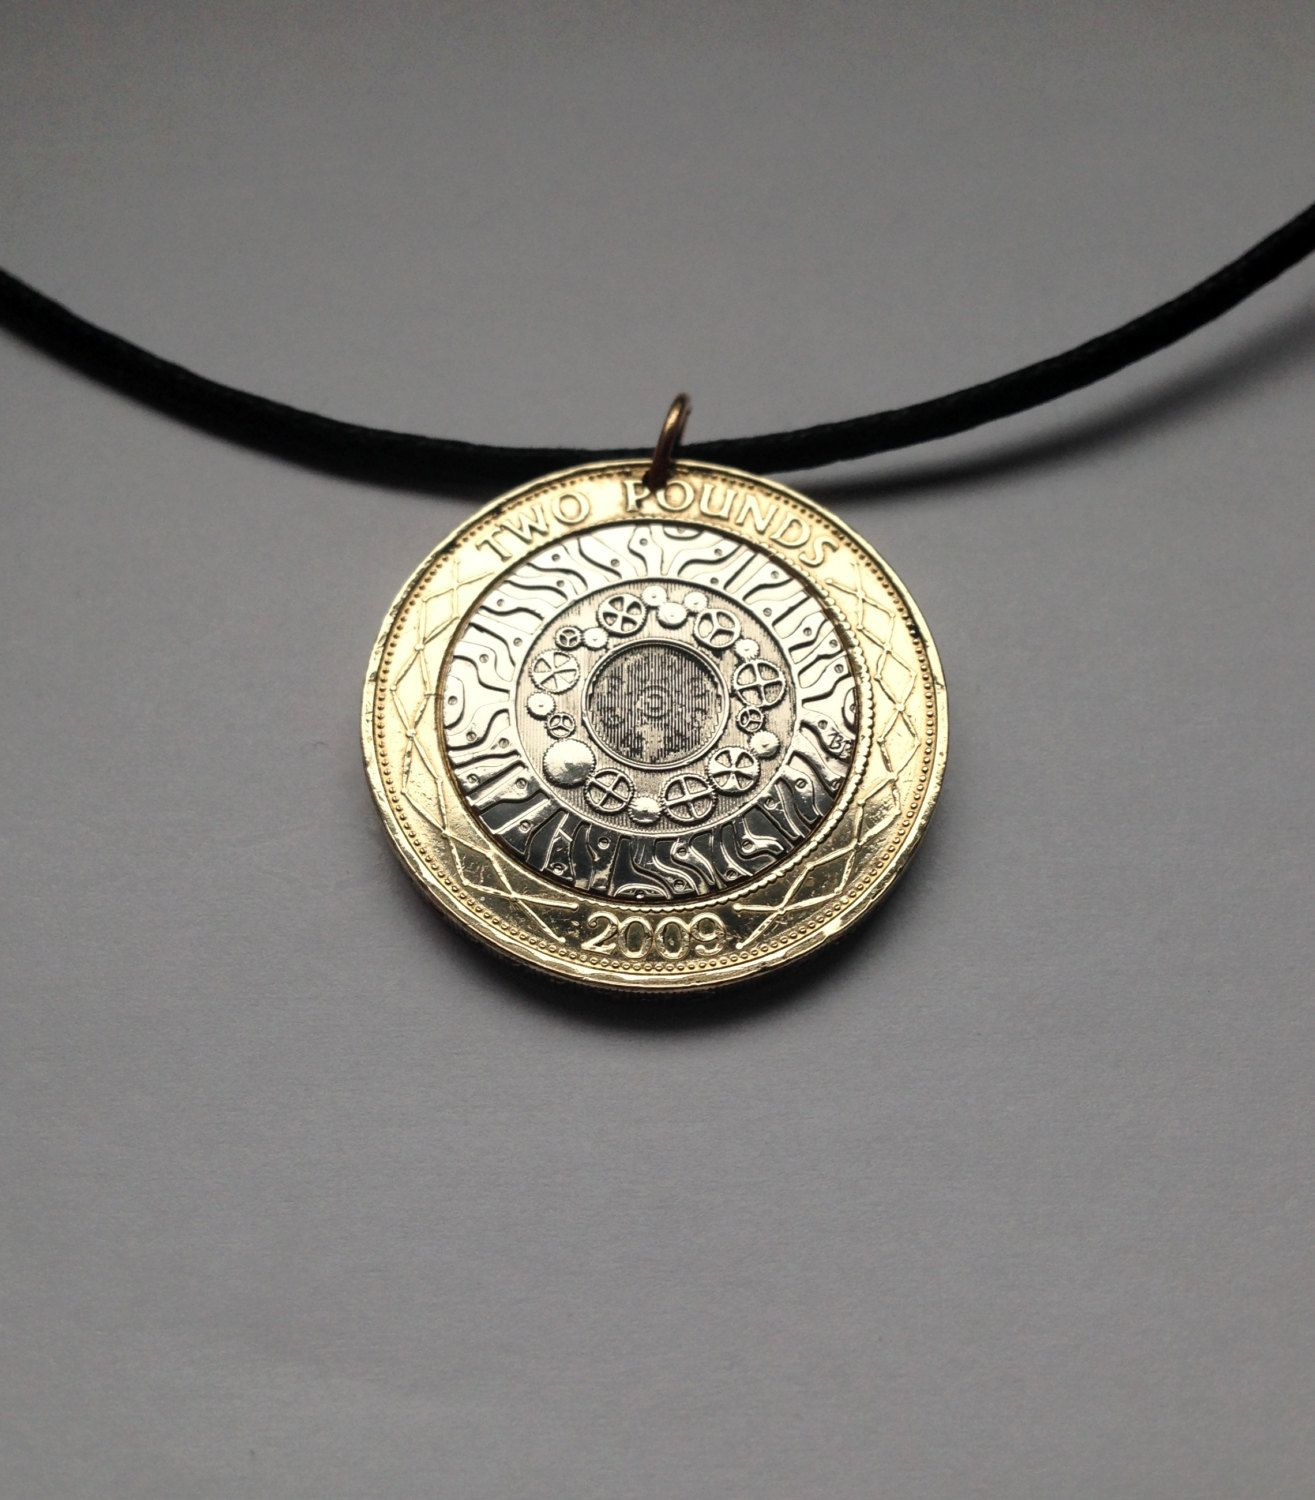 2009 Uk Great Britain 2 Pounds Charm Coin Pendant Necklace British Marking The History Of Technological Achieveme Coin Pendant Necklace Charm Coin Coin Pendant